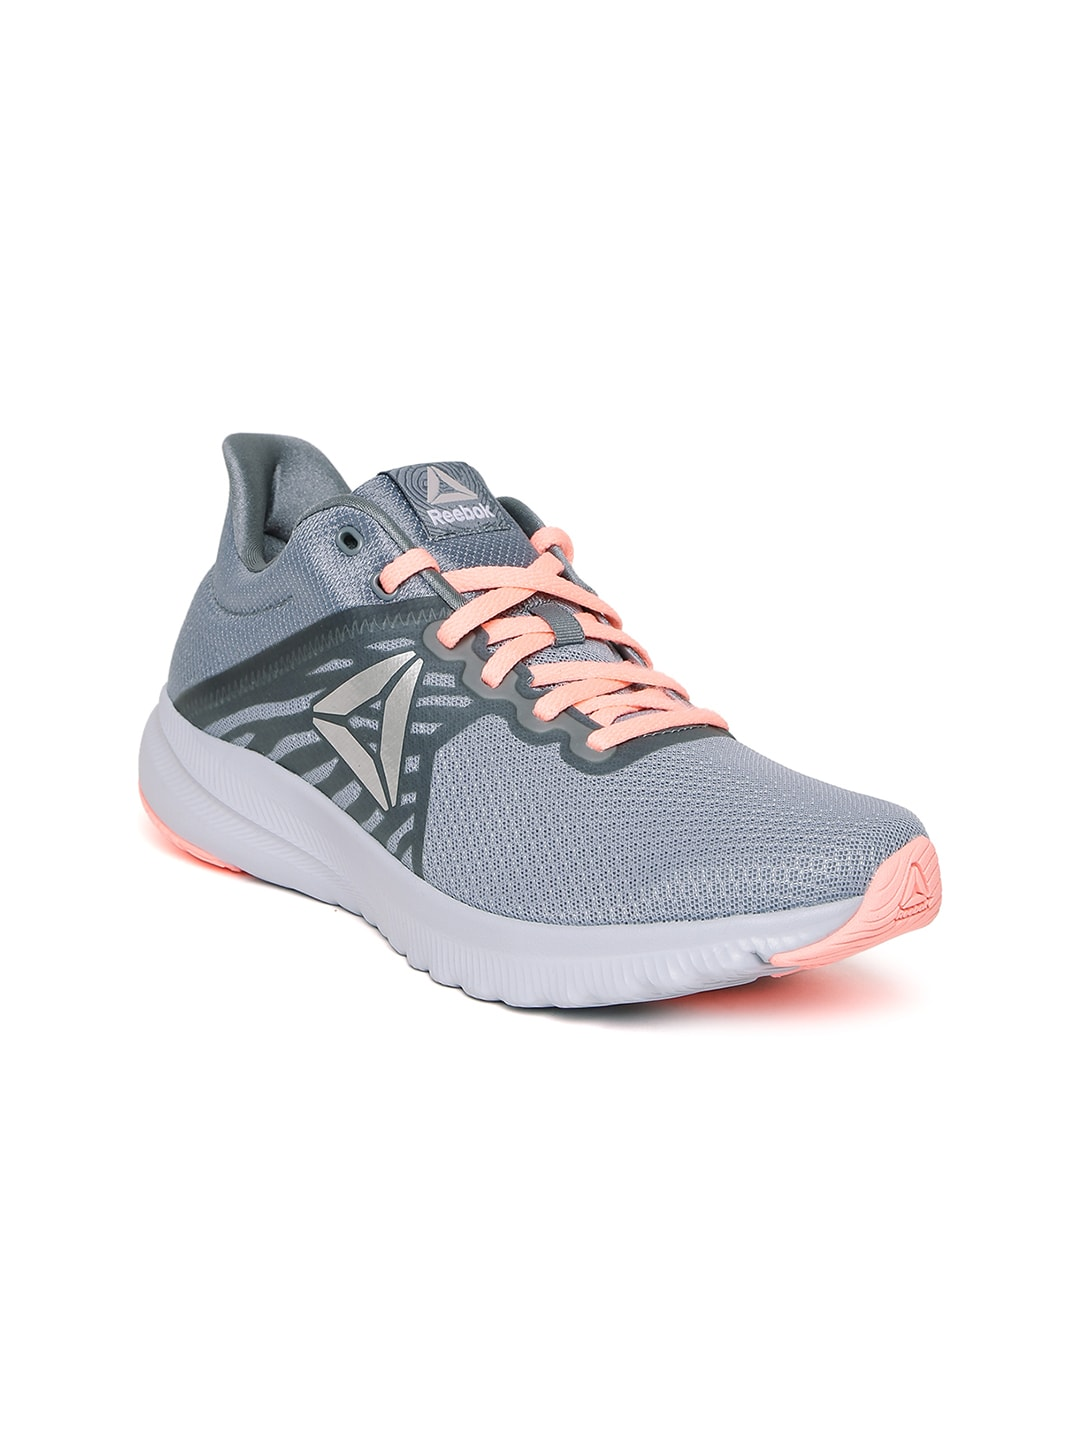 d0836213116b82 Buy Reebok Women Pink Astroride Walking Shoes - Sports Shoes for ...